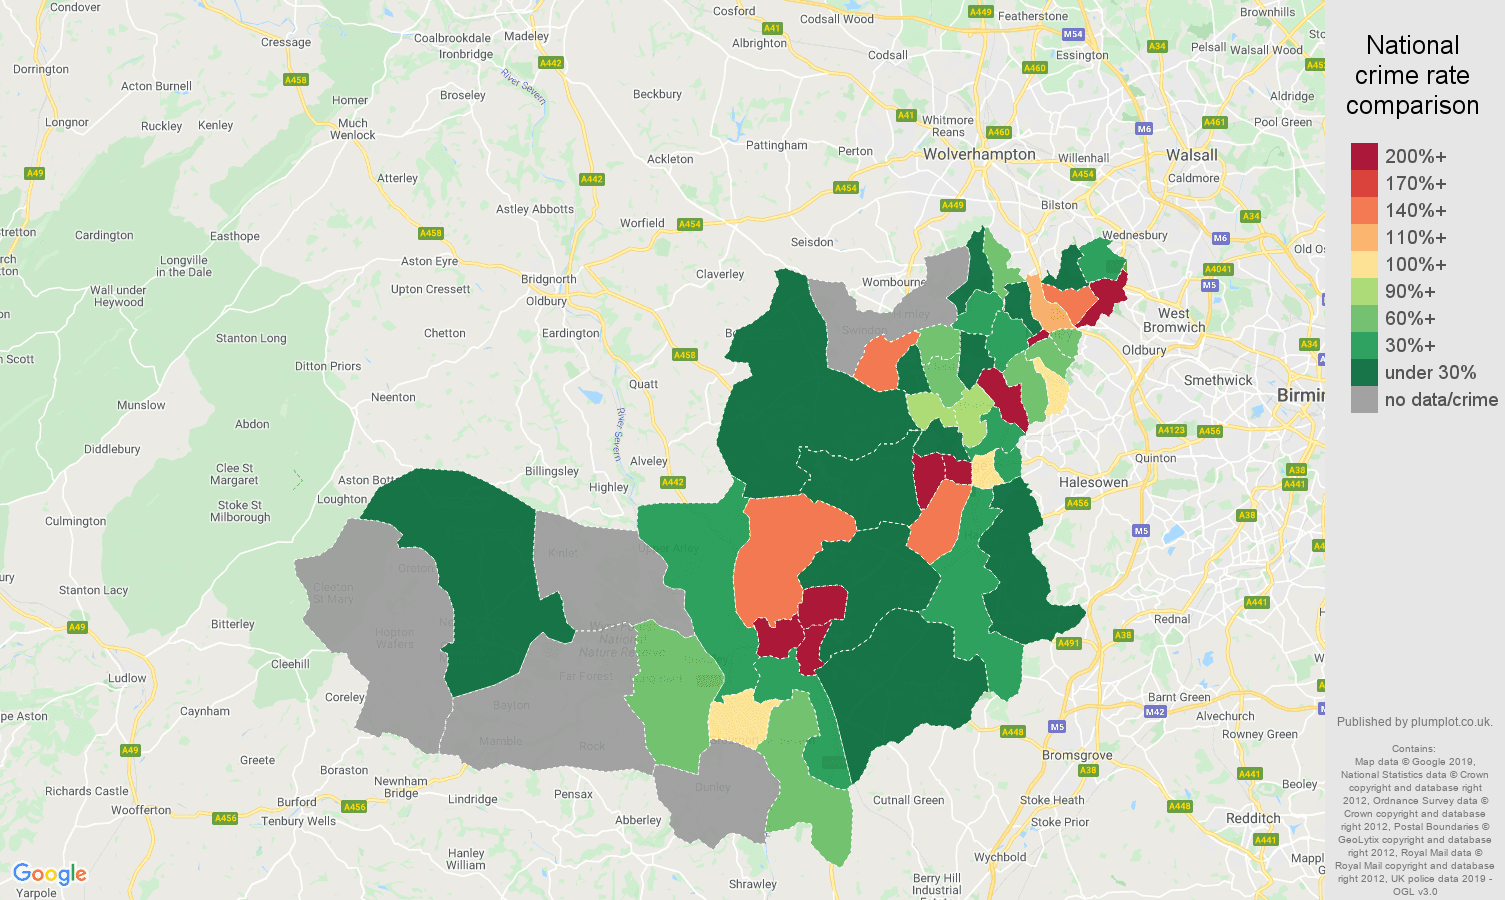 Dudley shoplifting crime rate comparison map